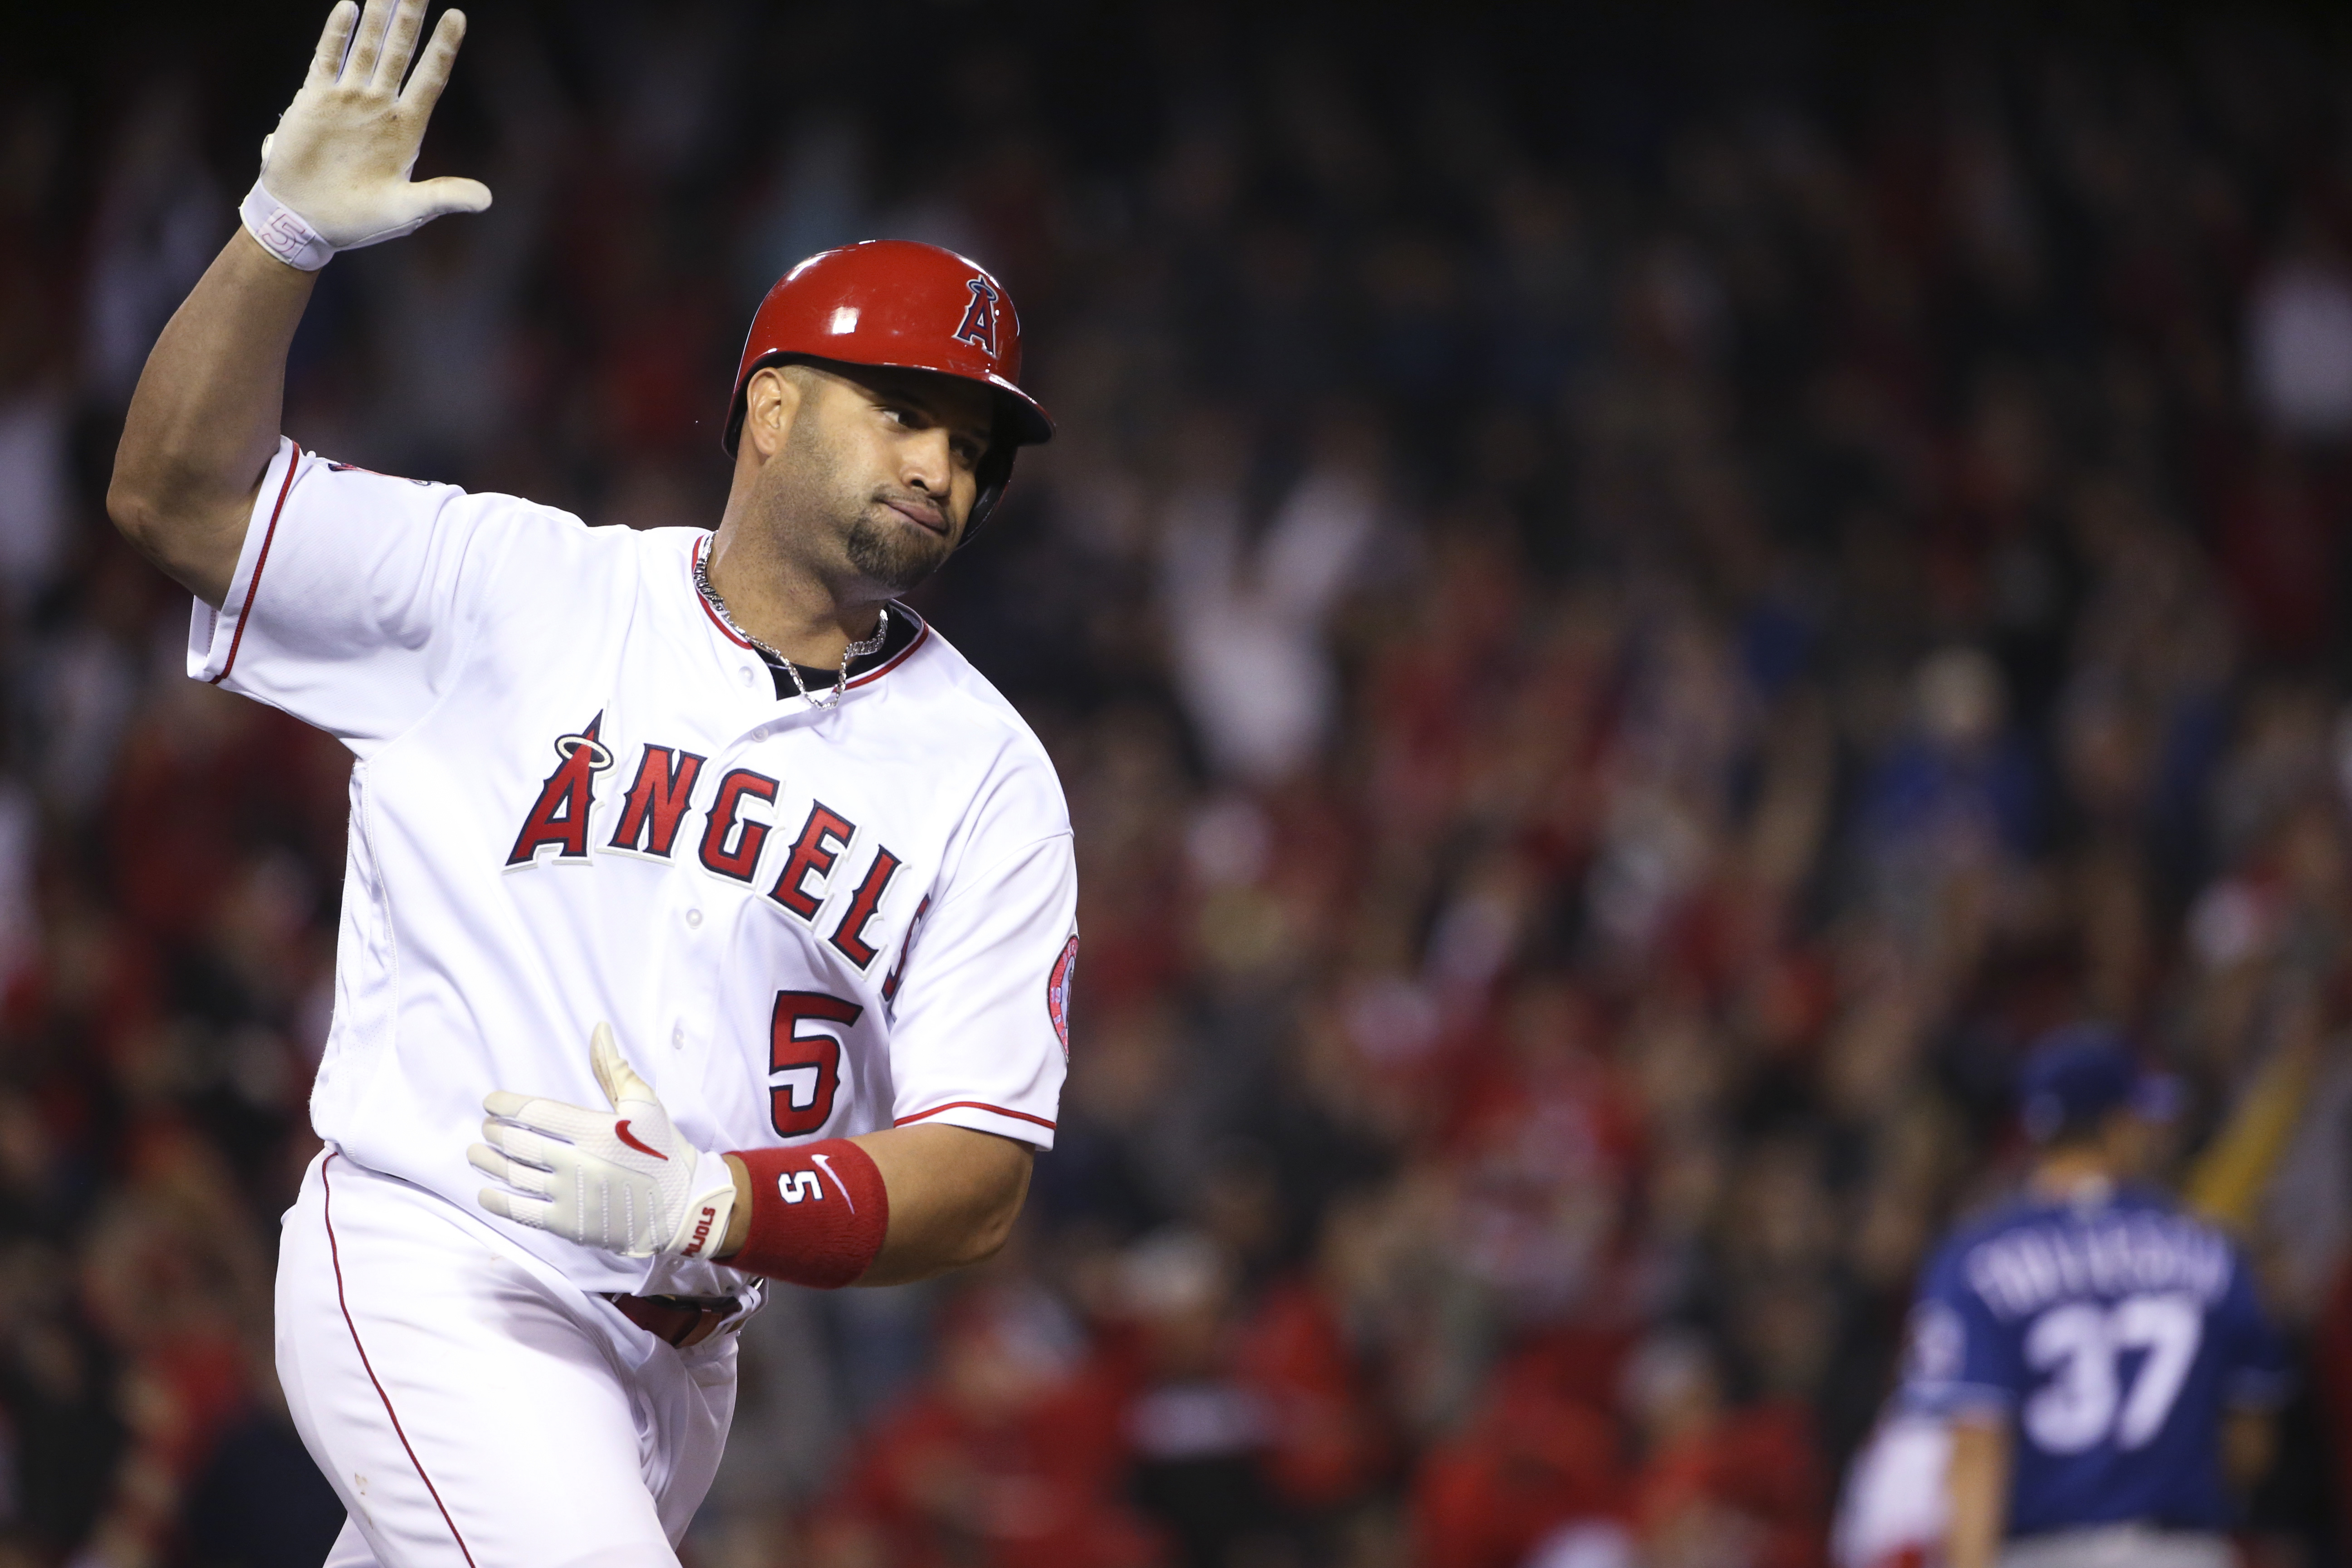 Los Angeles Angels' Albert Pujols starts to celebrate after a single to left with the bases loaded in the ninth inning to give the Angels a 4-3 victory over the Texas Rangers in a baseball game Thursday, April 7, 2016, in Anaheim, Calif. (AP Photo/Lenny I